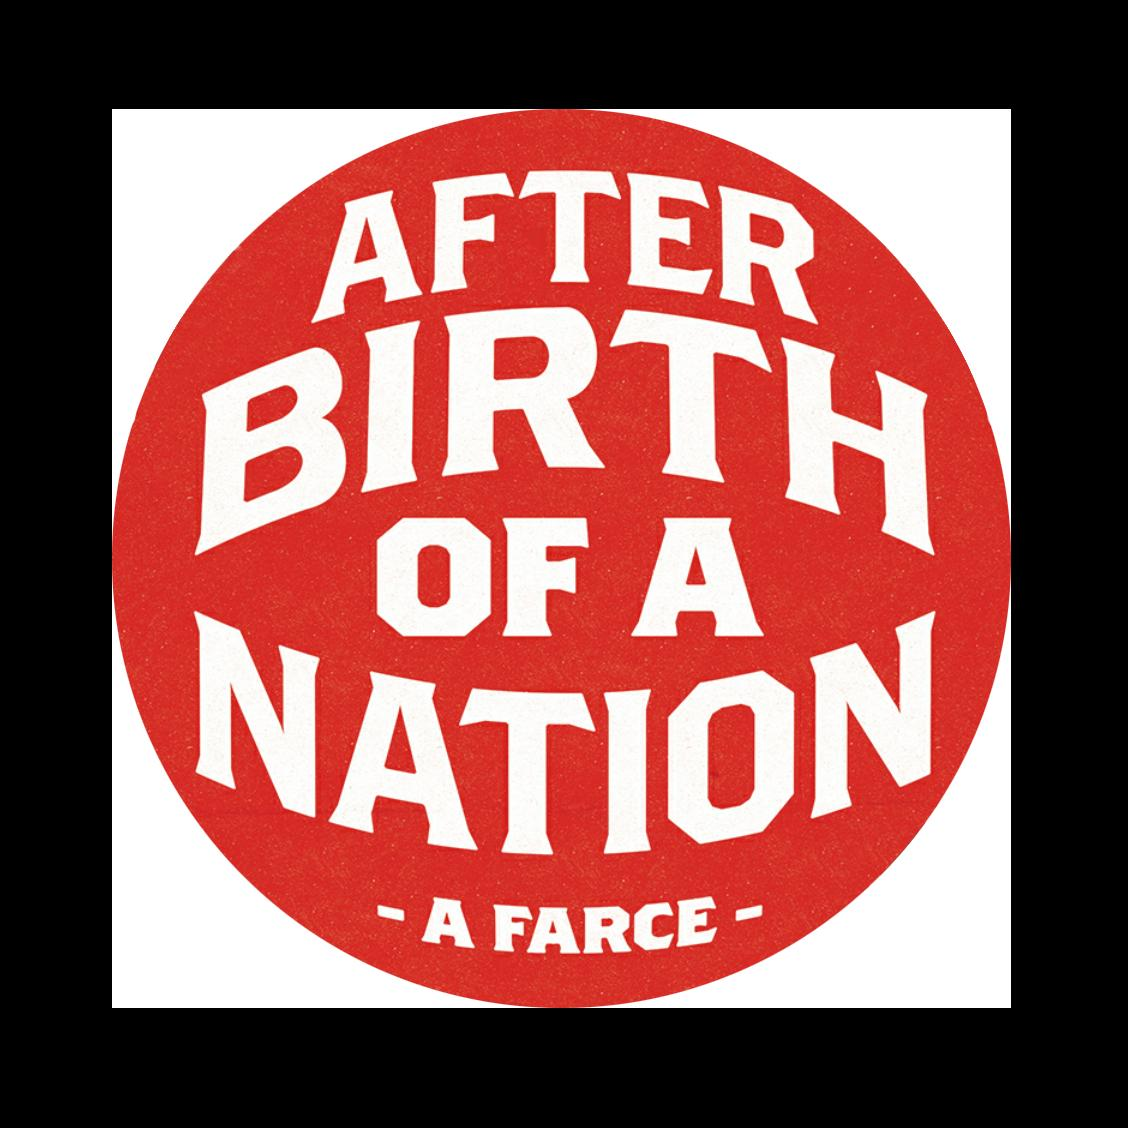 Student Theatre Production: After Birth of a Nation